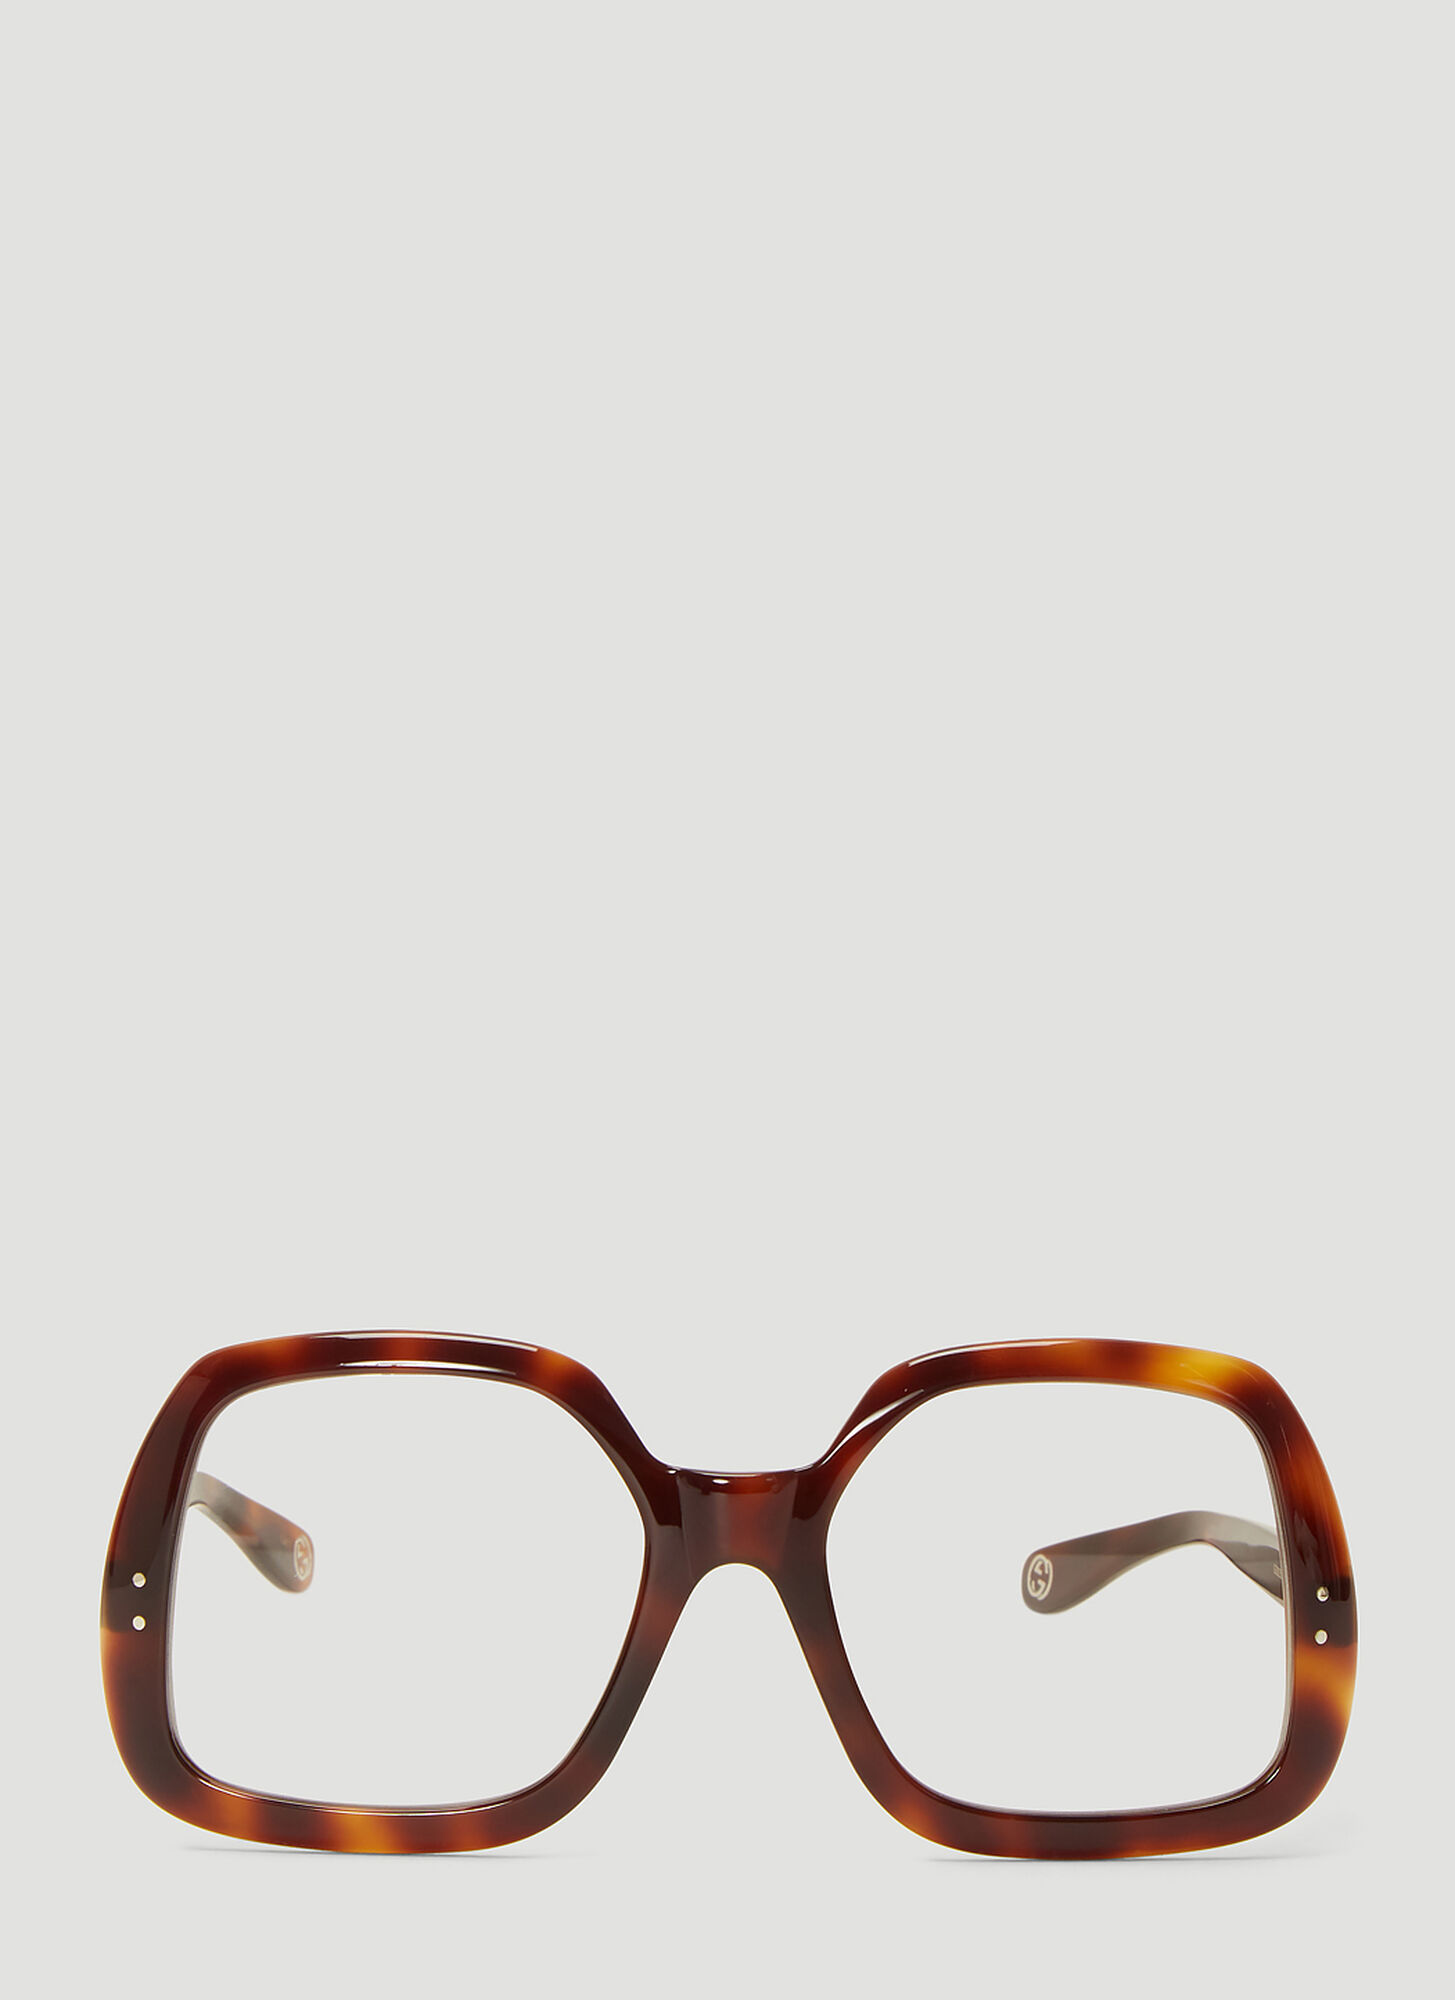 Gucci Square Acetate Sunglasses in Brown